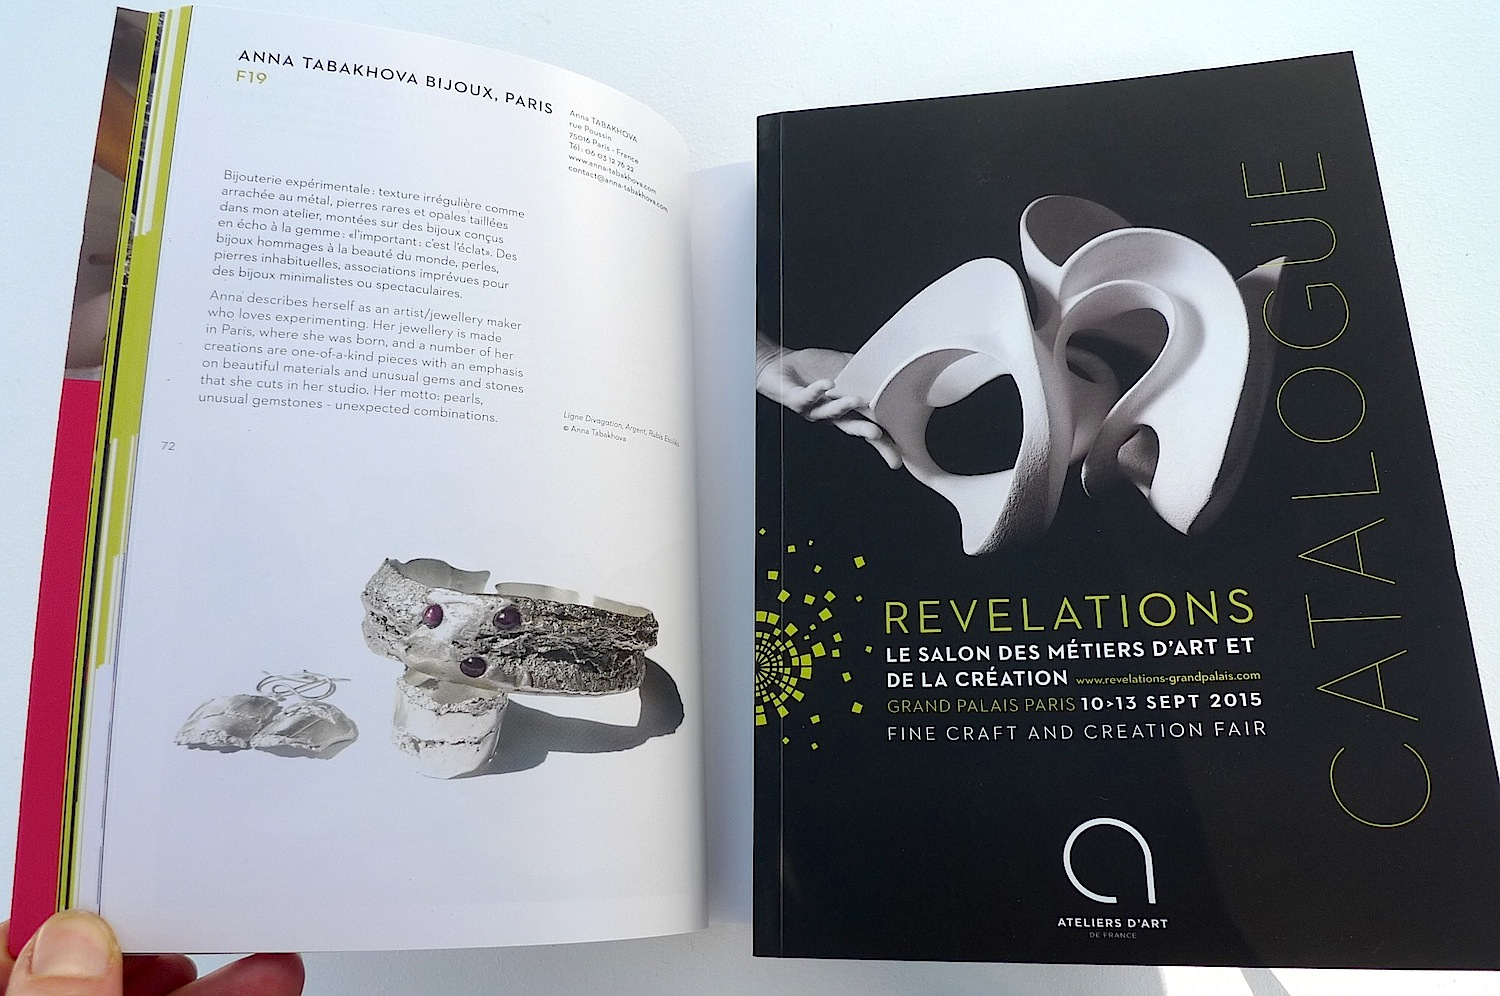 Le catalogue Revelations anna tabakhova bijoux Paris